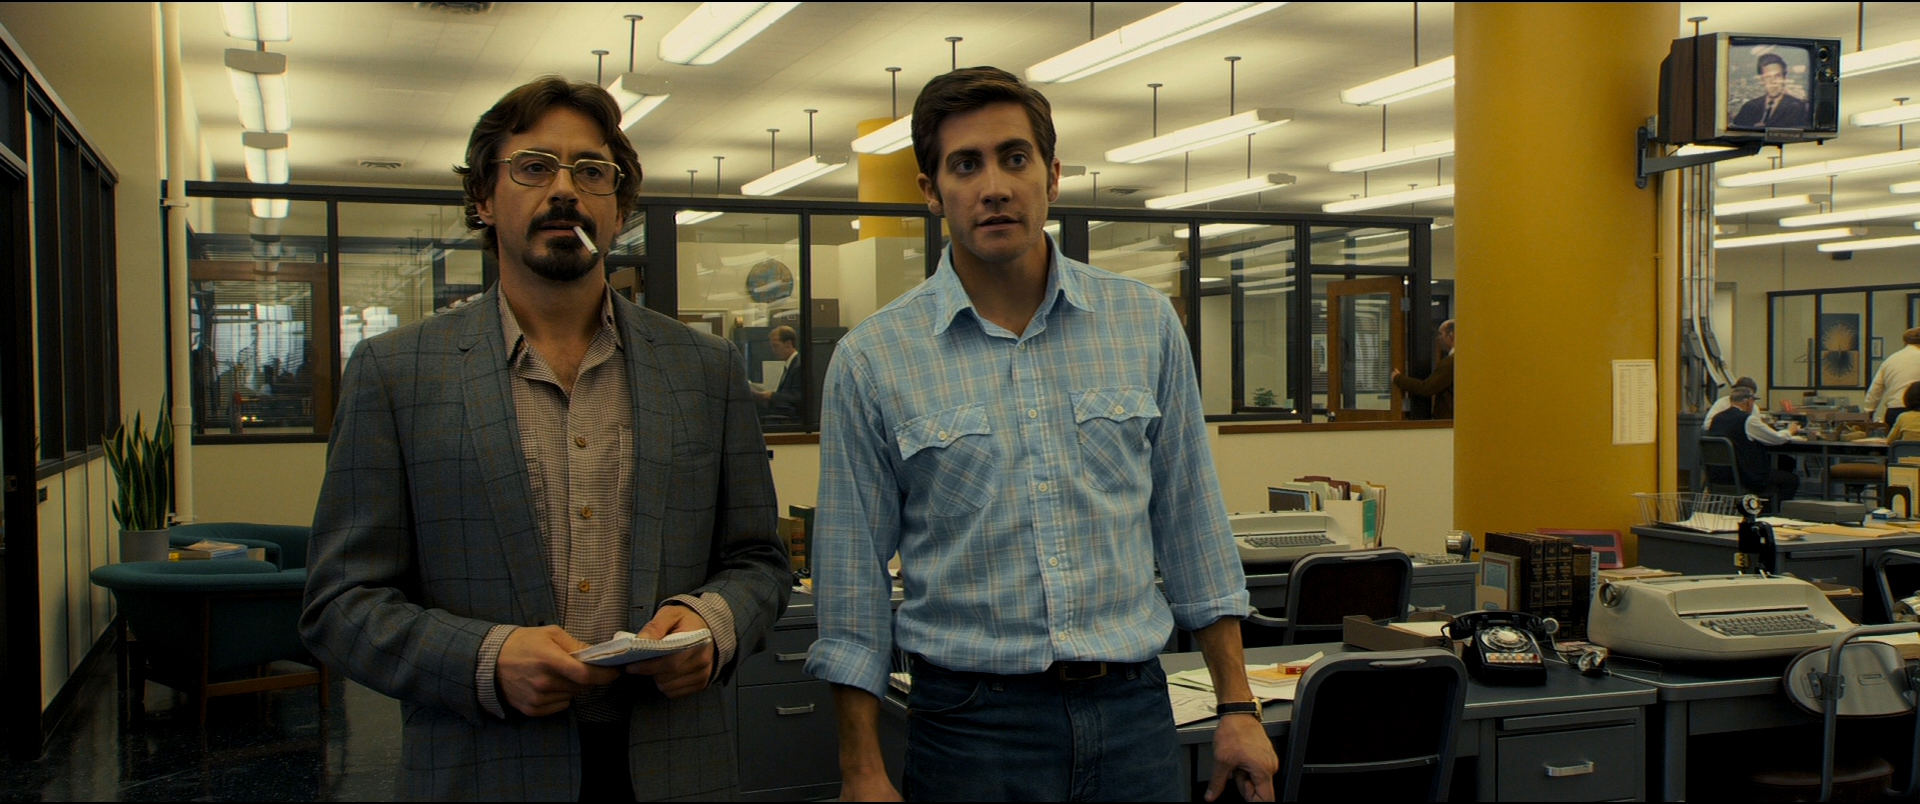 The Films of David Fincher – Zodiac (Film review) | Lisa ...